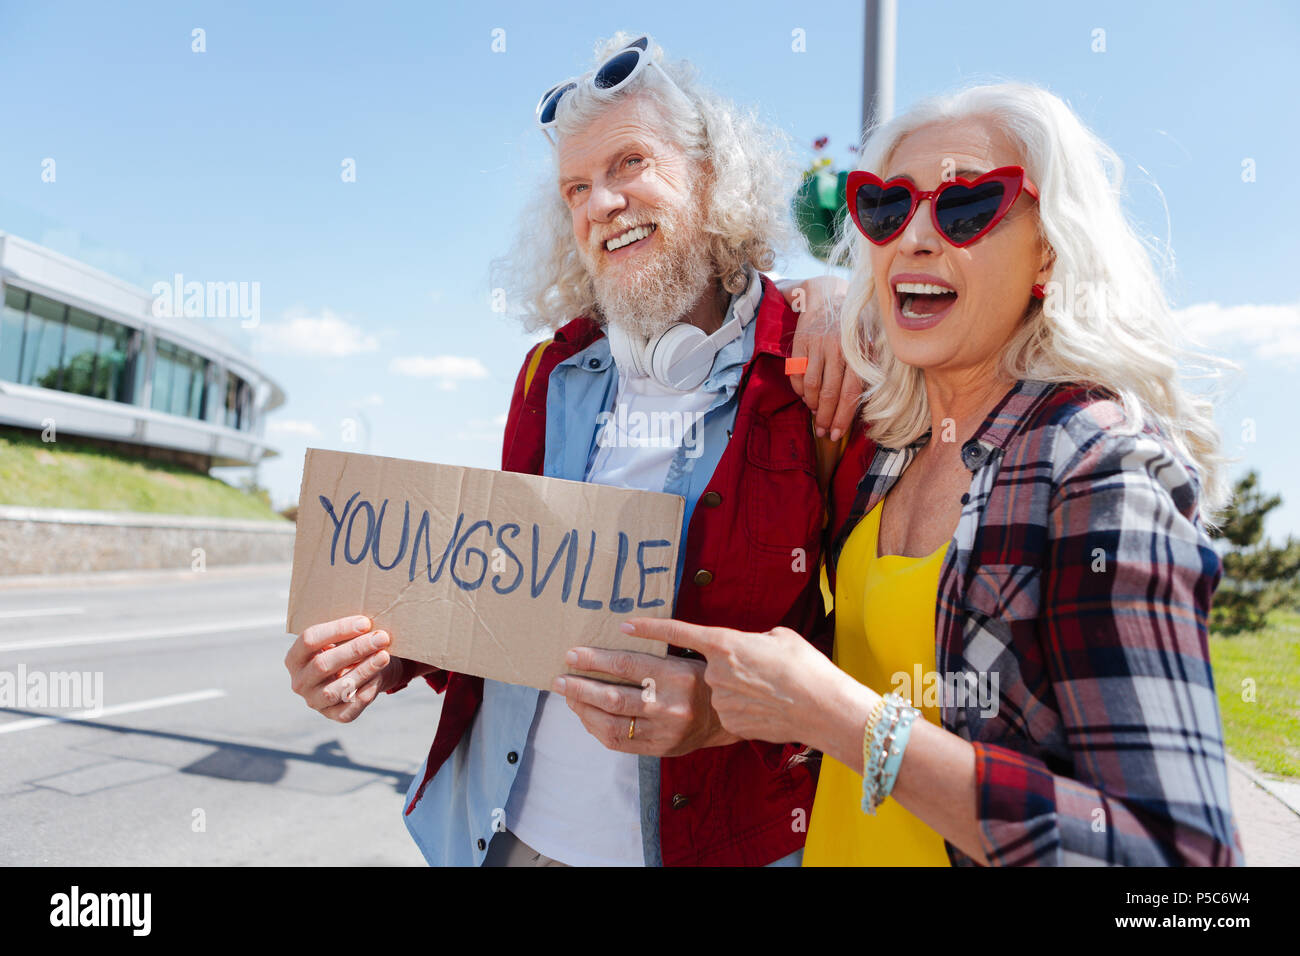 Joyful elderly couple looking for a ride - Stock Image